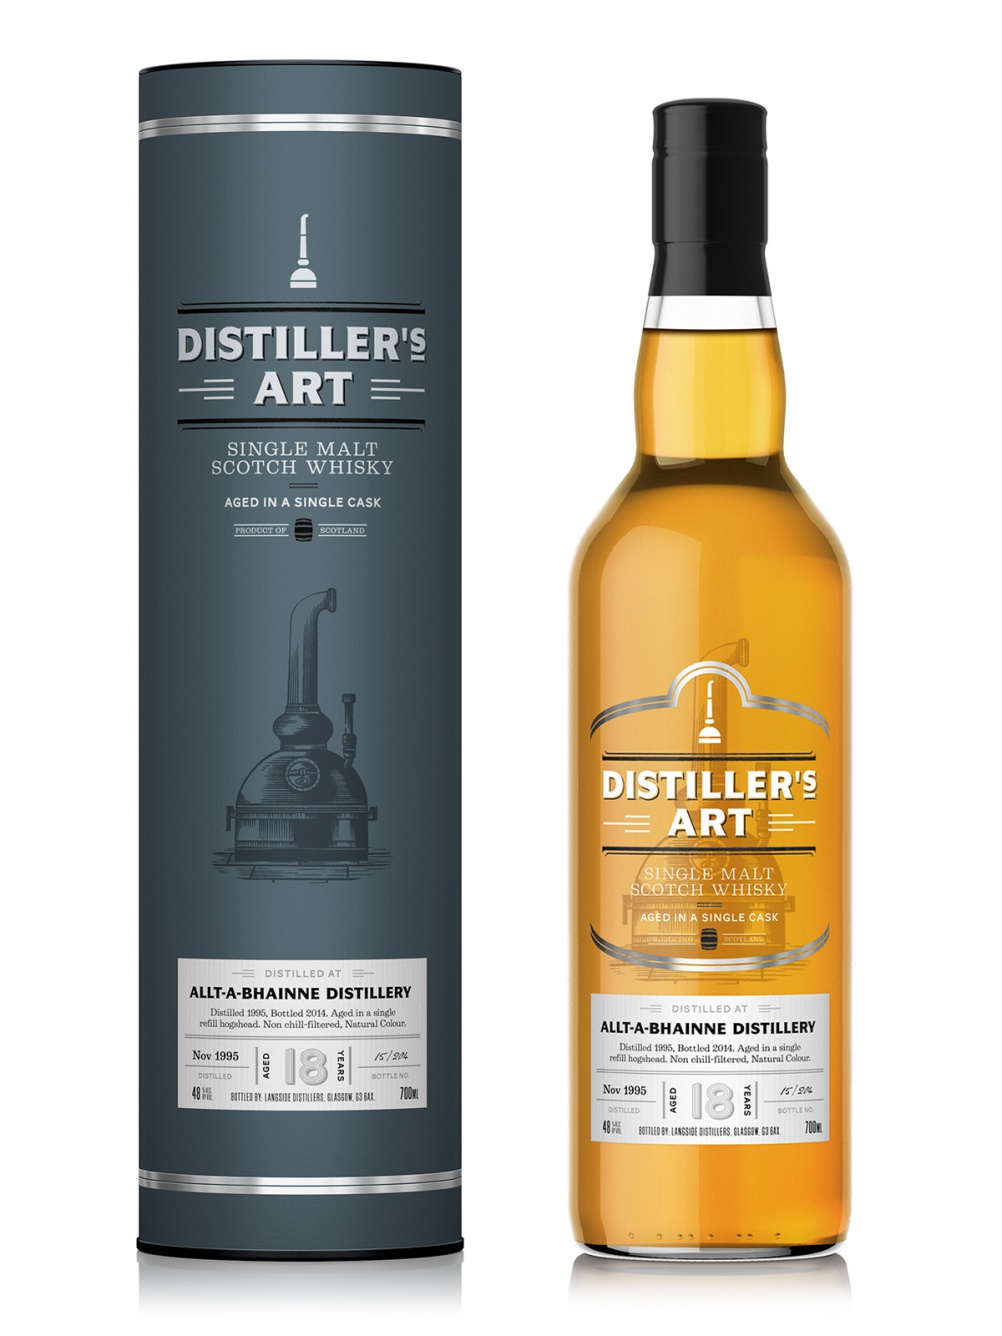 Distillers Art Tube & Bottle 1200x1600